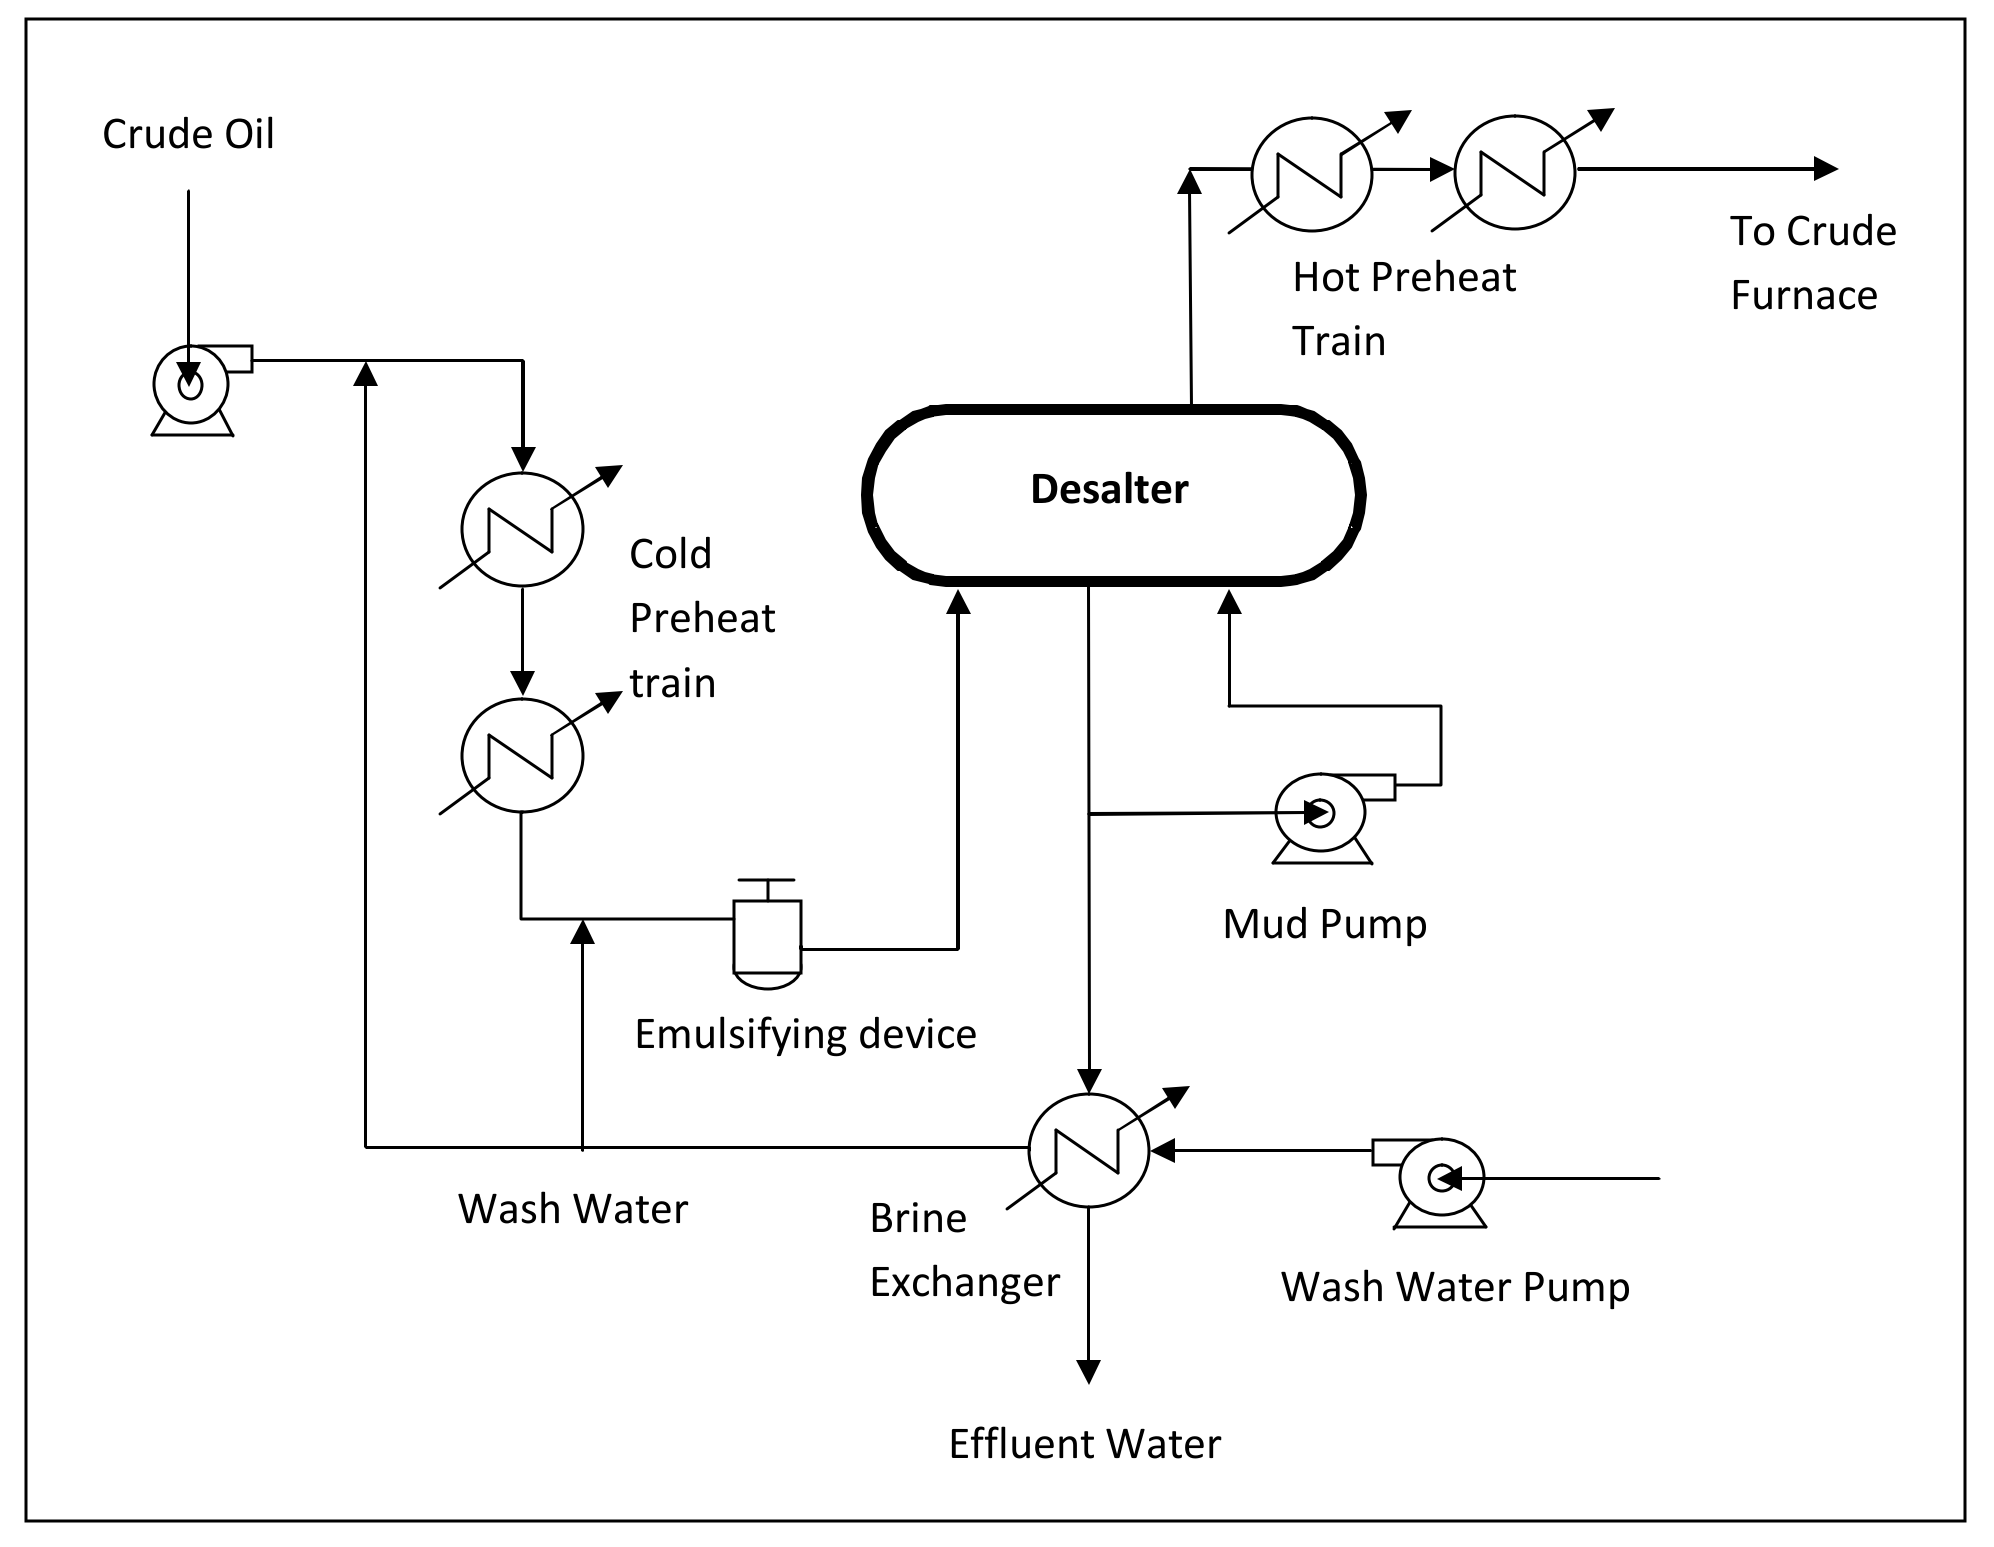 Process flow diagrams image collections diagram design ideas typical process flow diagrams pfds enggcyclopedia crude pooptronica image collections buycottarizona Gallery